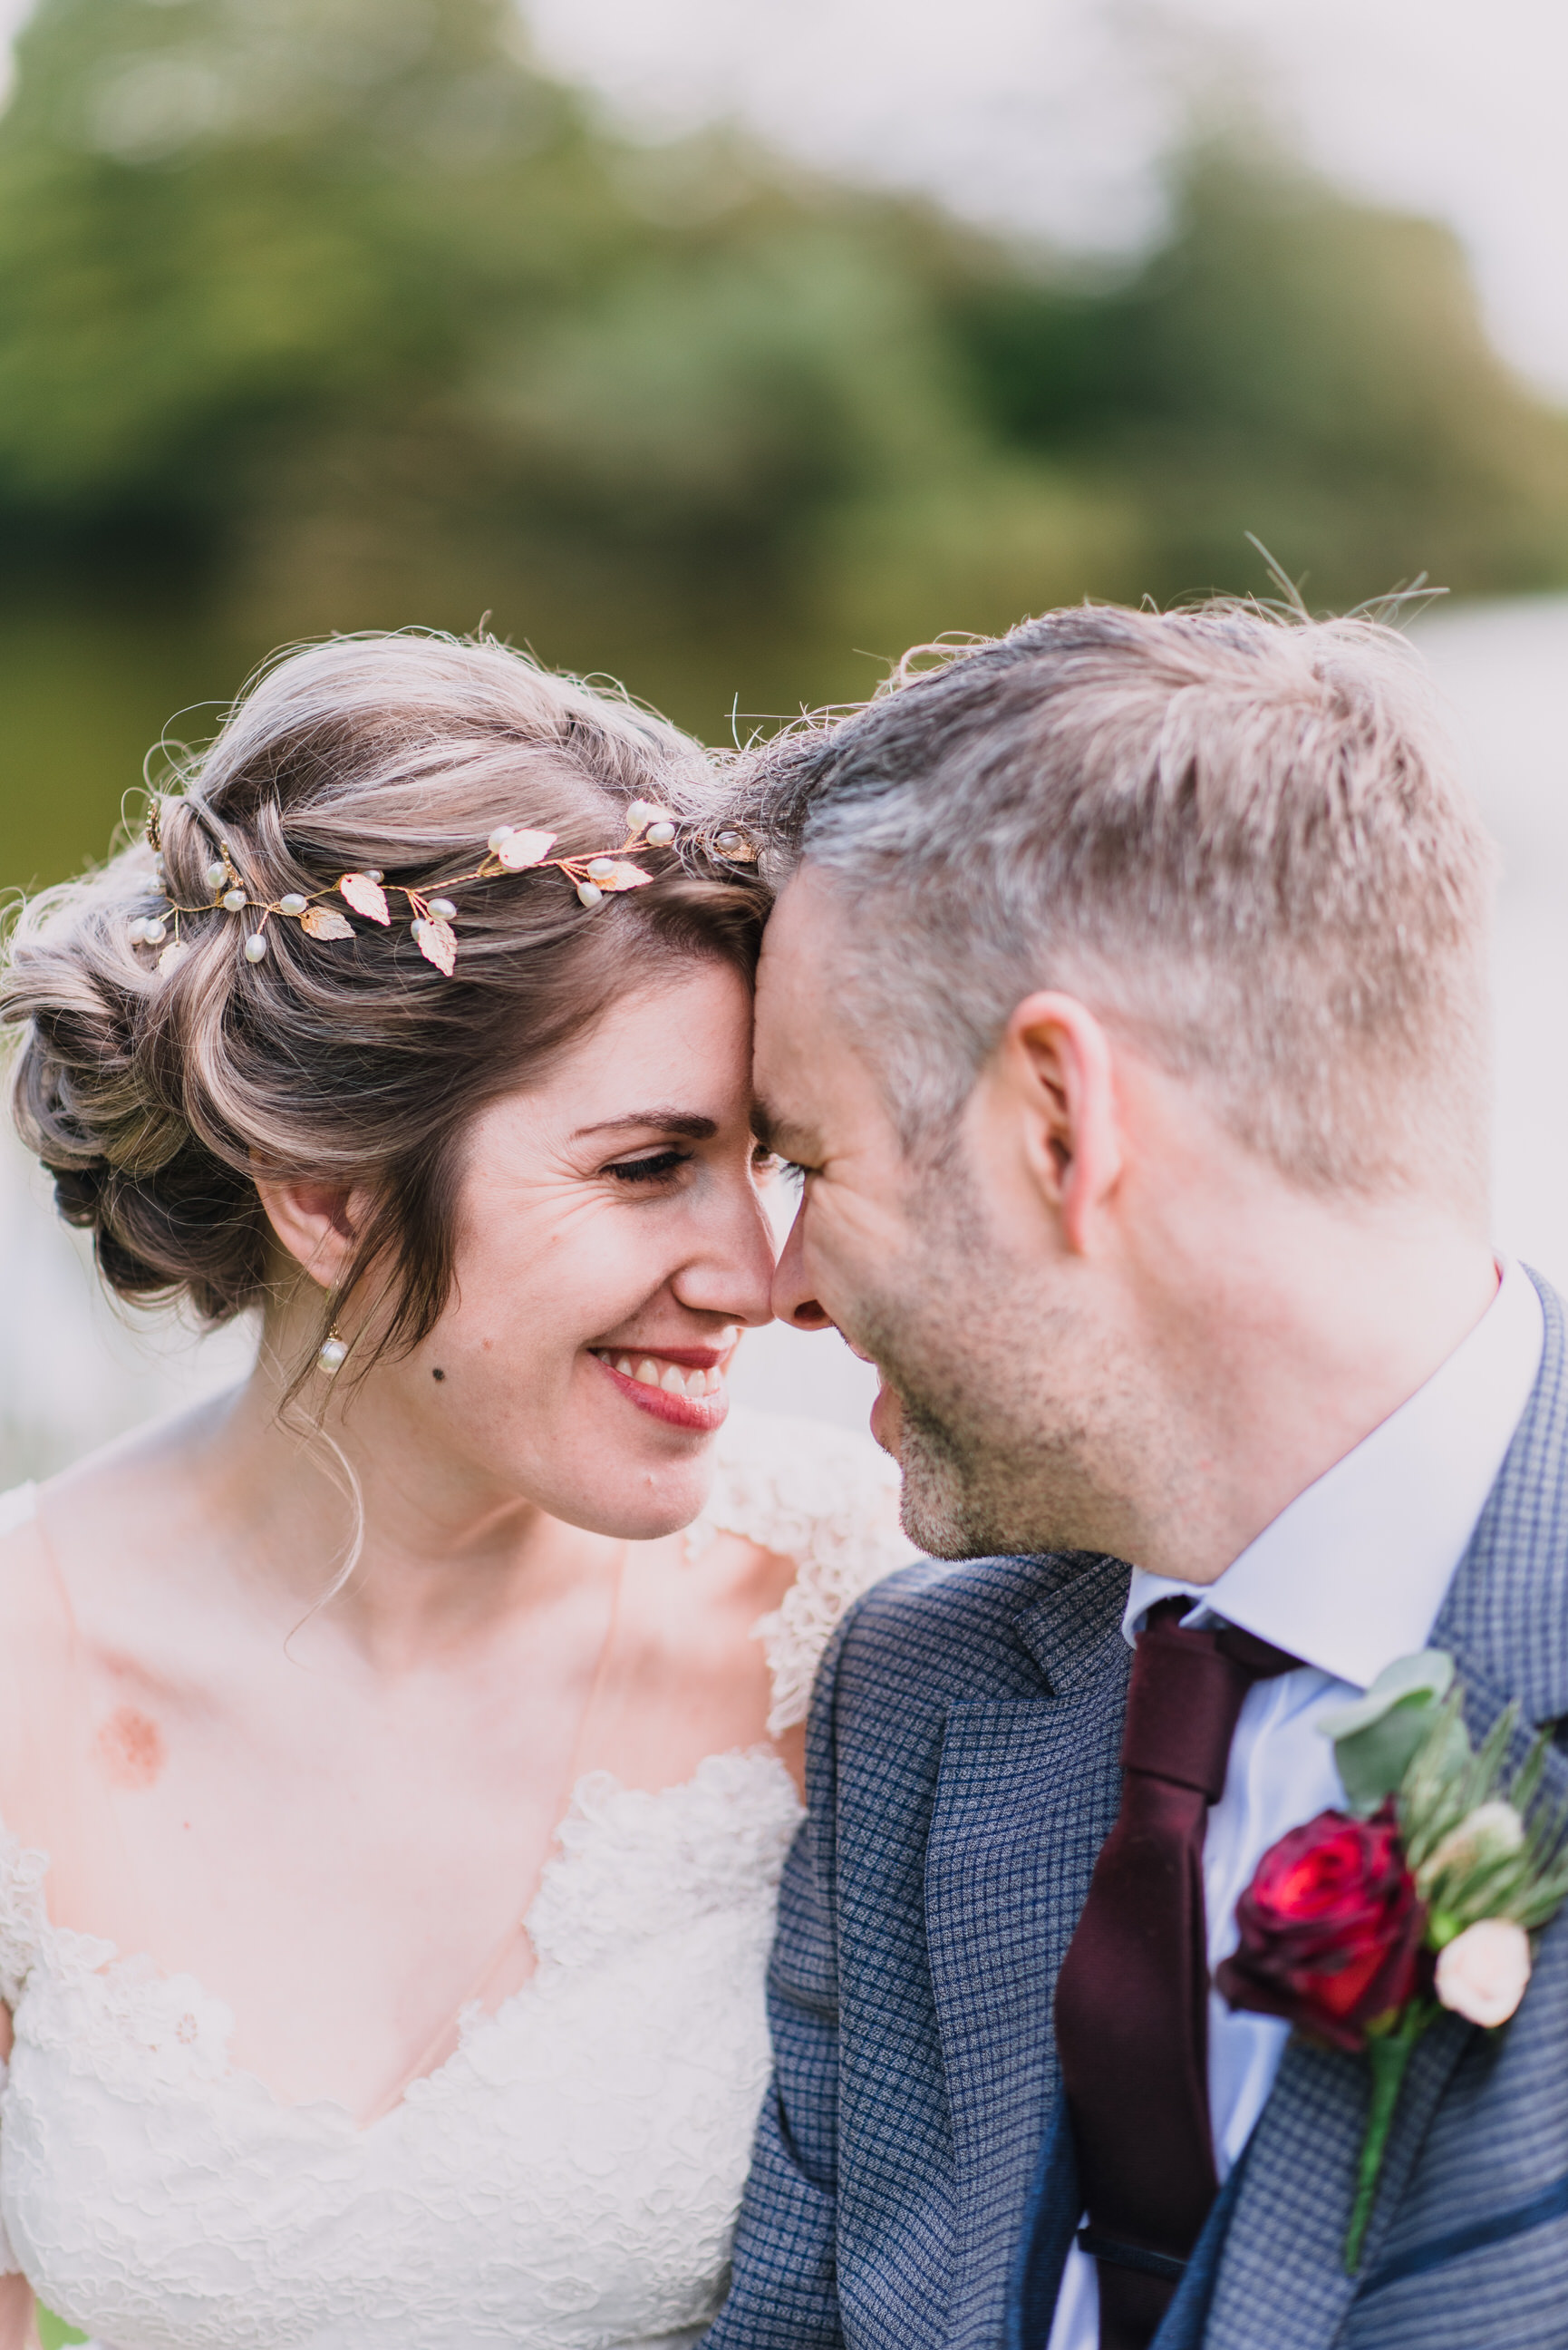 lissanoure castle wedding, northern ireland wedding photographer, romantic northern irish wedding venue, castle wedding ireland, natural wedding photography ni (86).jpg